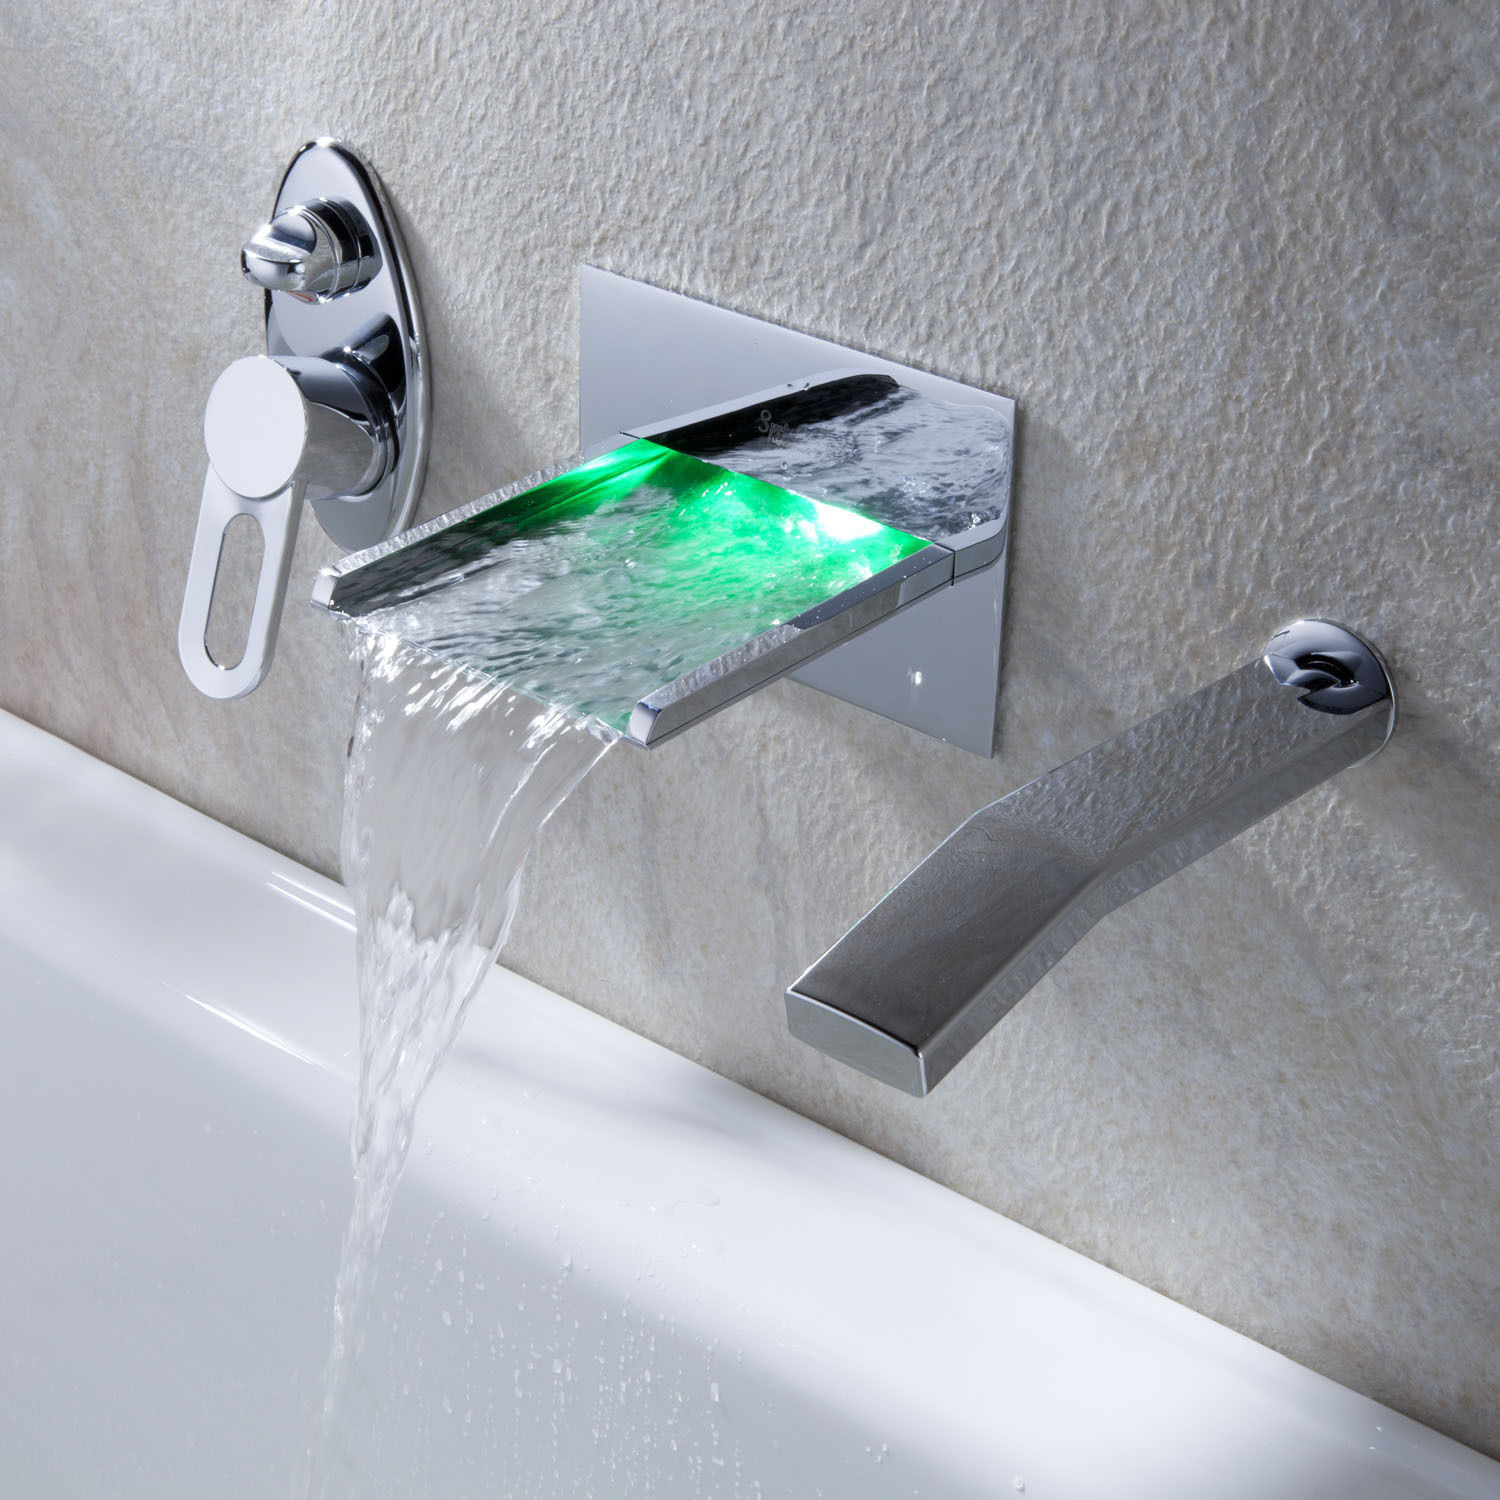 Buy Mullino Led Rgb Single Handle Widespread Waterfall Pull-Out ...